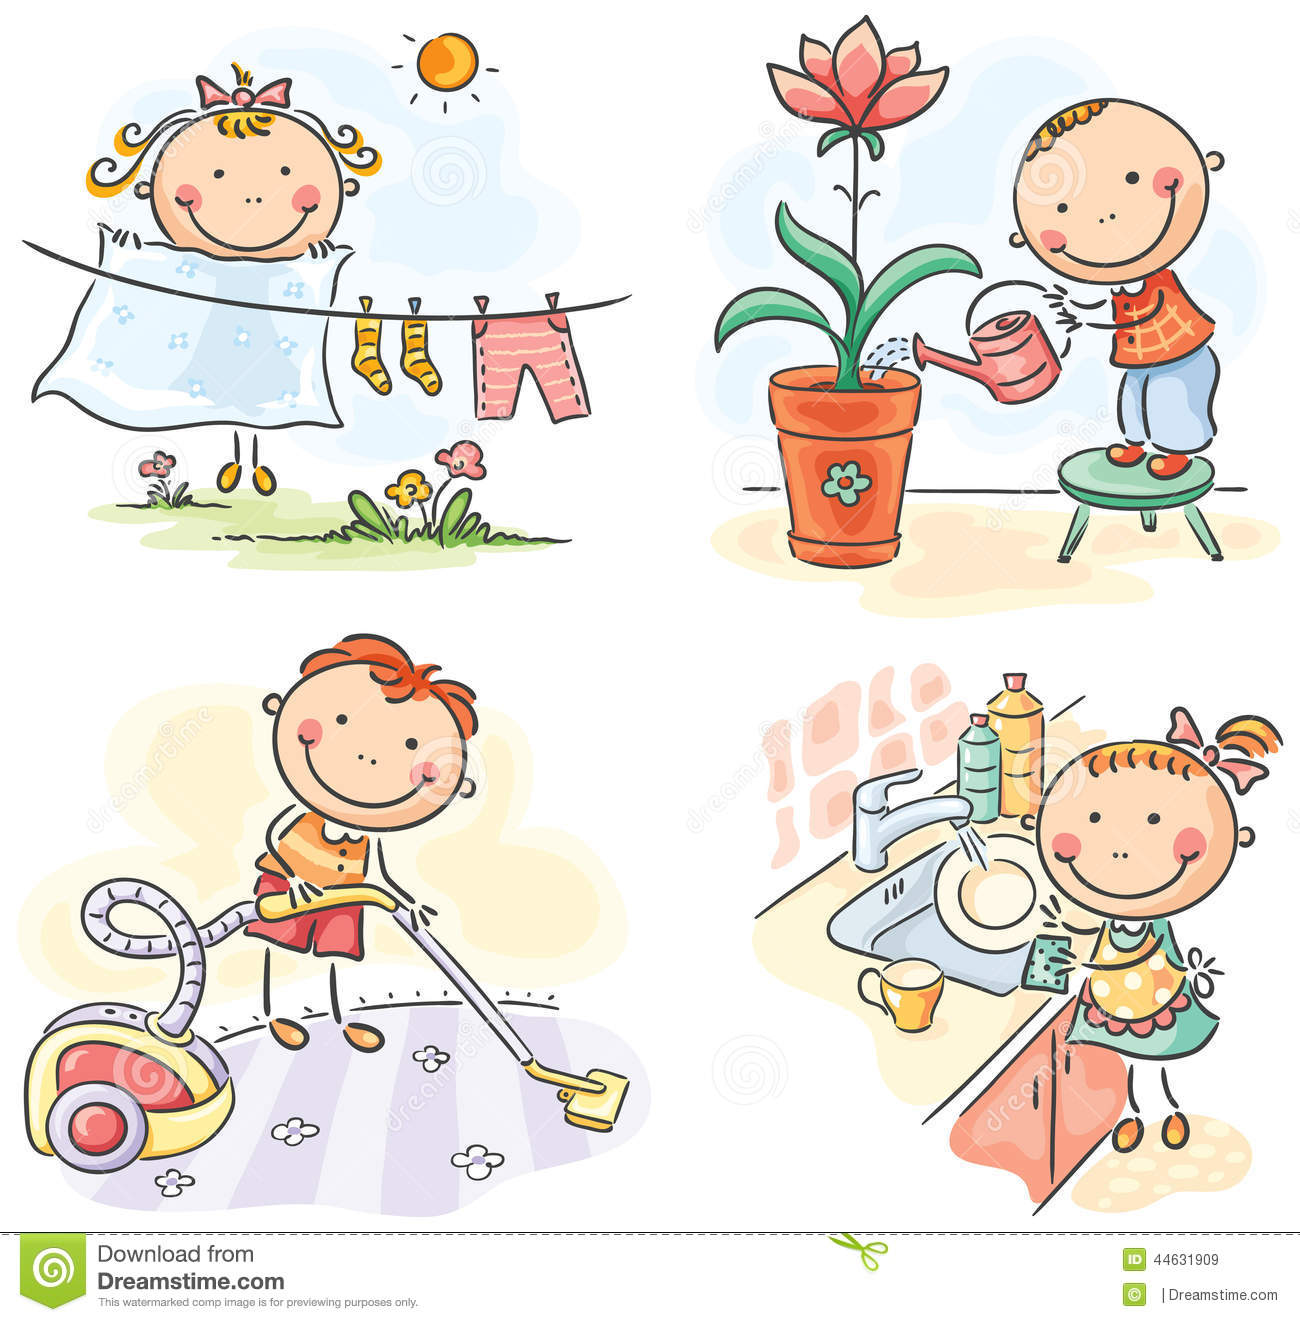 Http Www Dreamstime Com Stock Illustration Kids Helping Their Parents Housework Image44631909